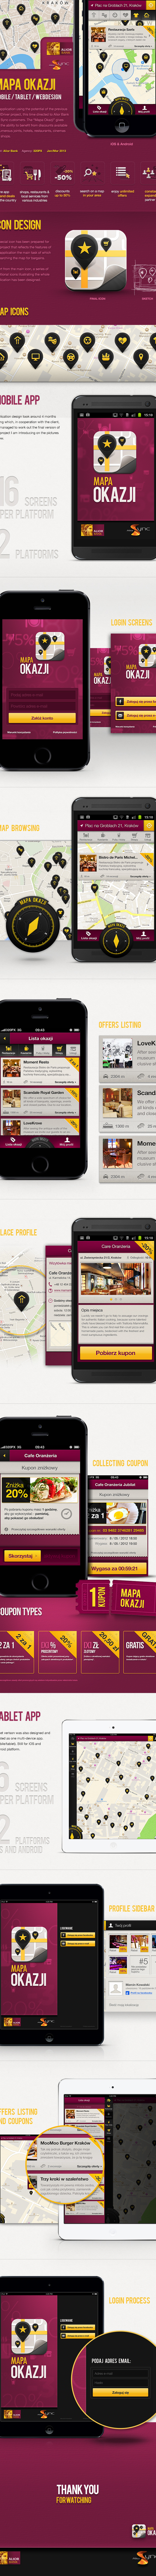 mobile iphone android Deals Bank 320px rzmota partners map